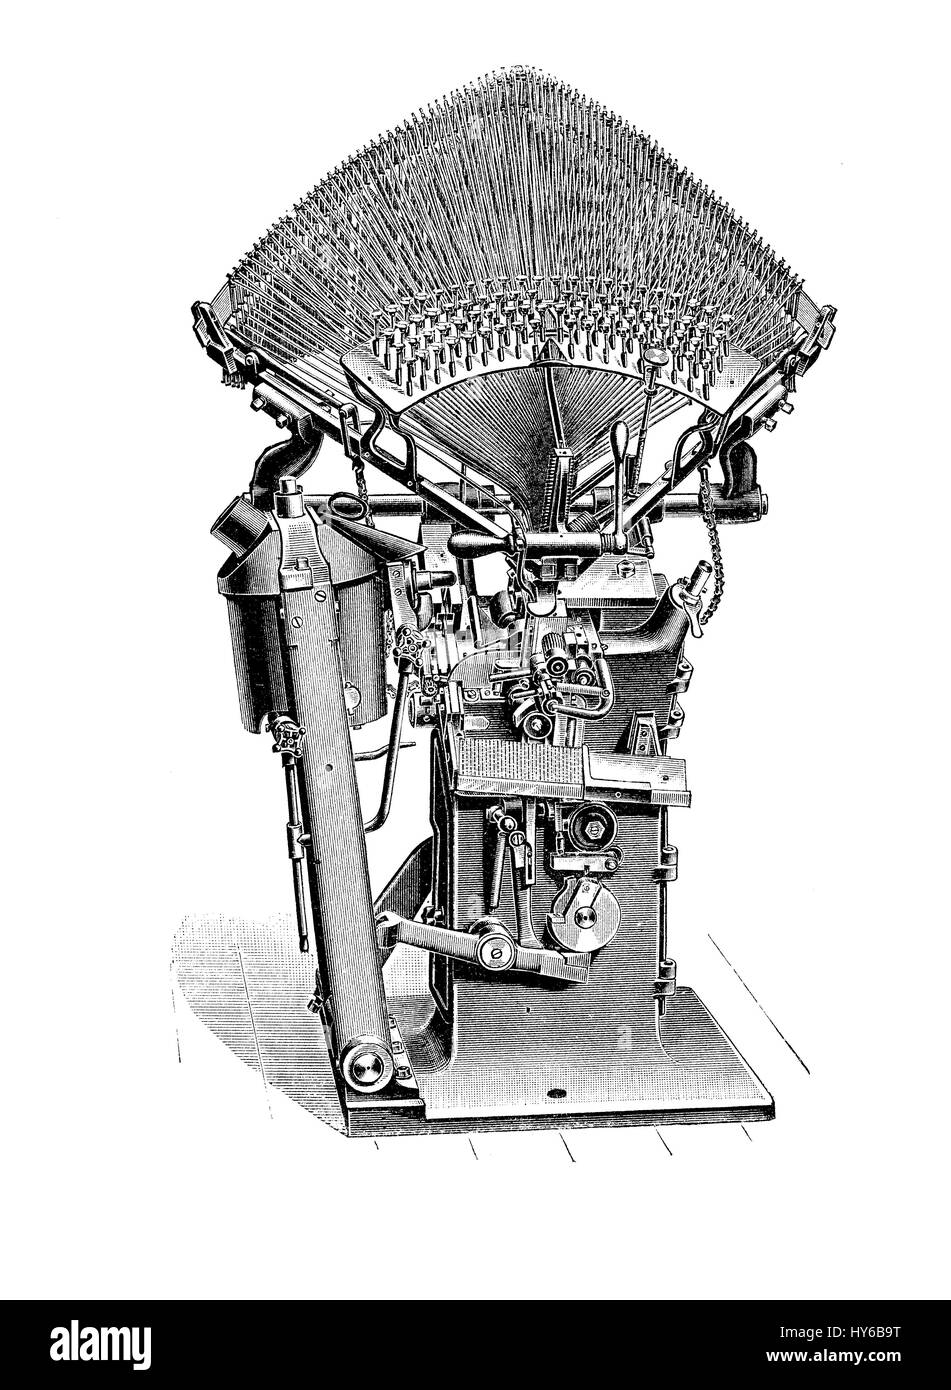 Typography, typesetting machine for print composition, XIX century - Stock Image